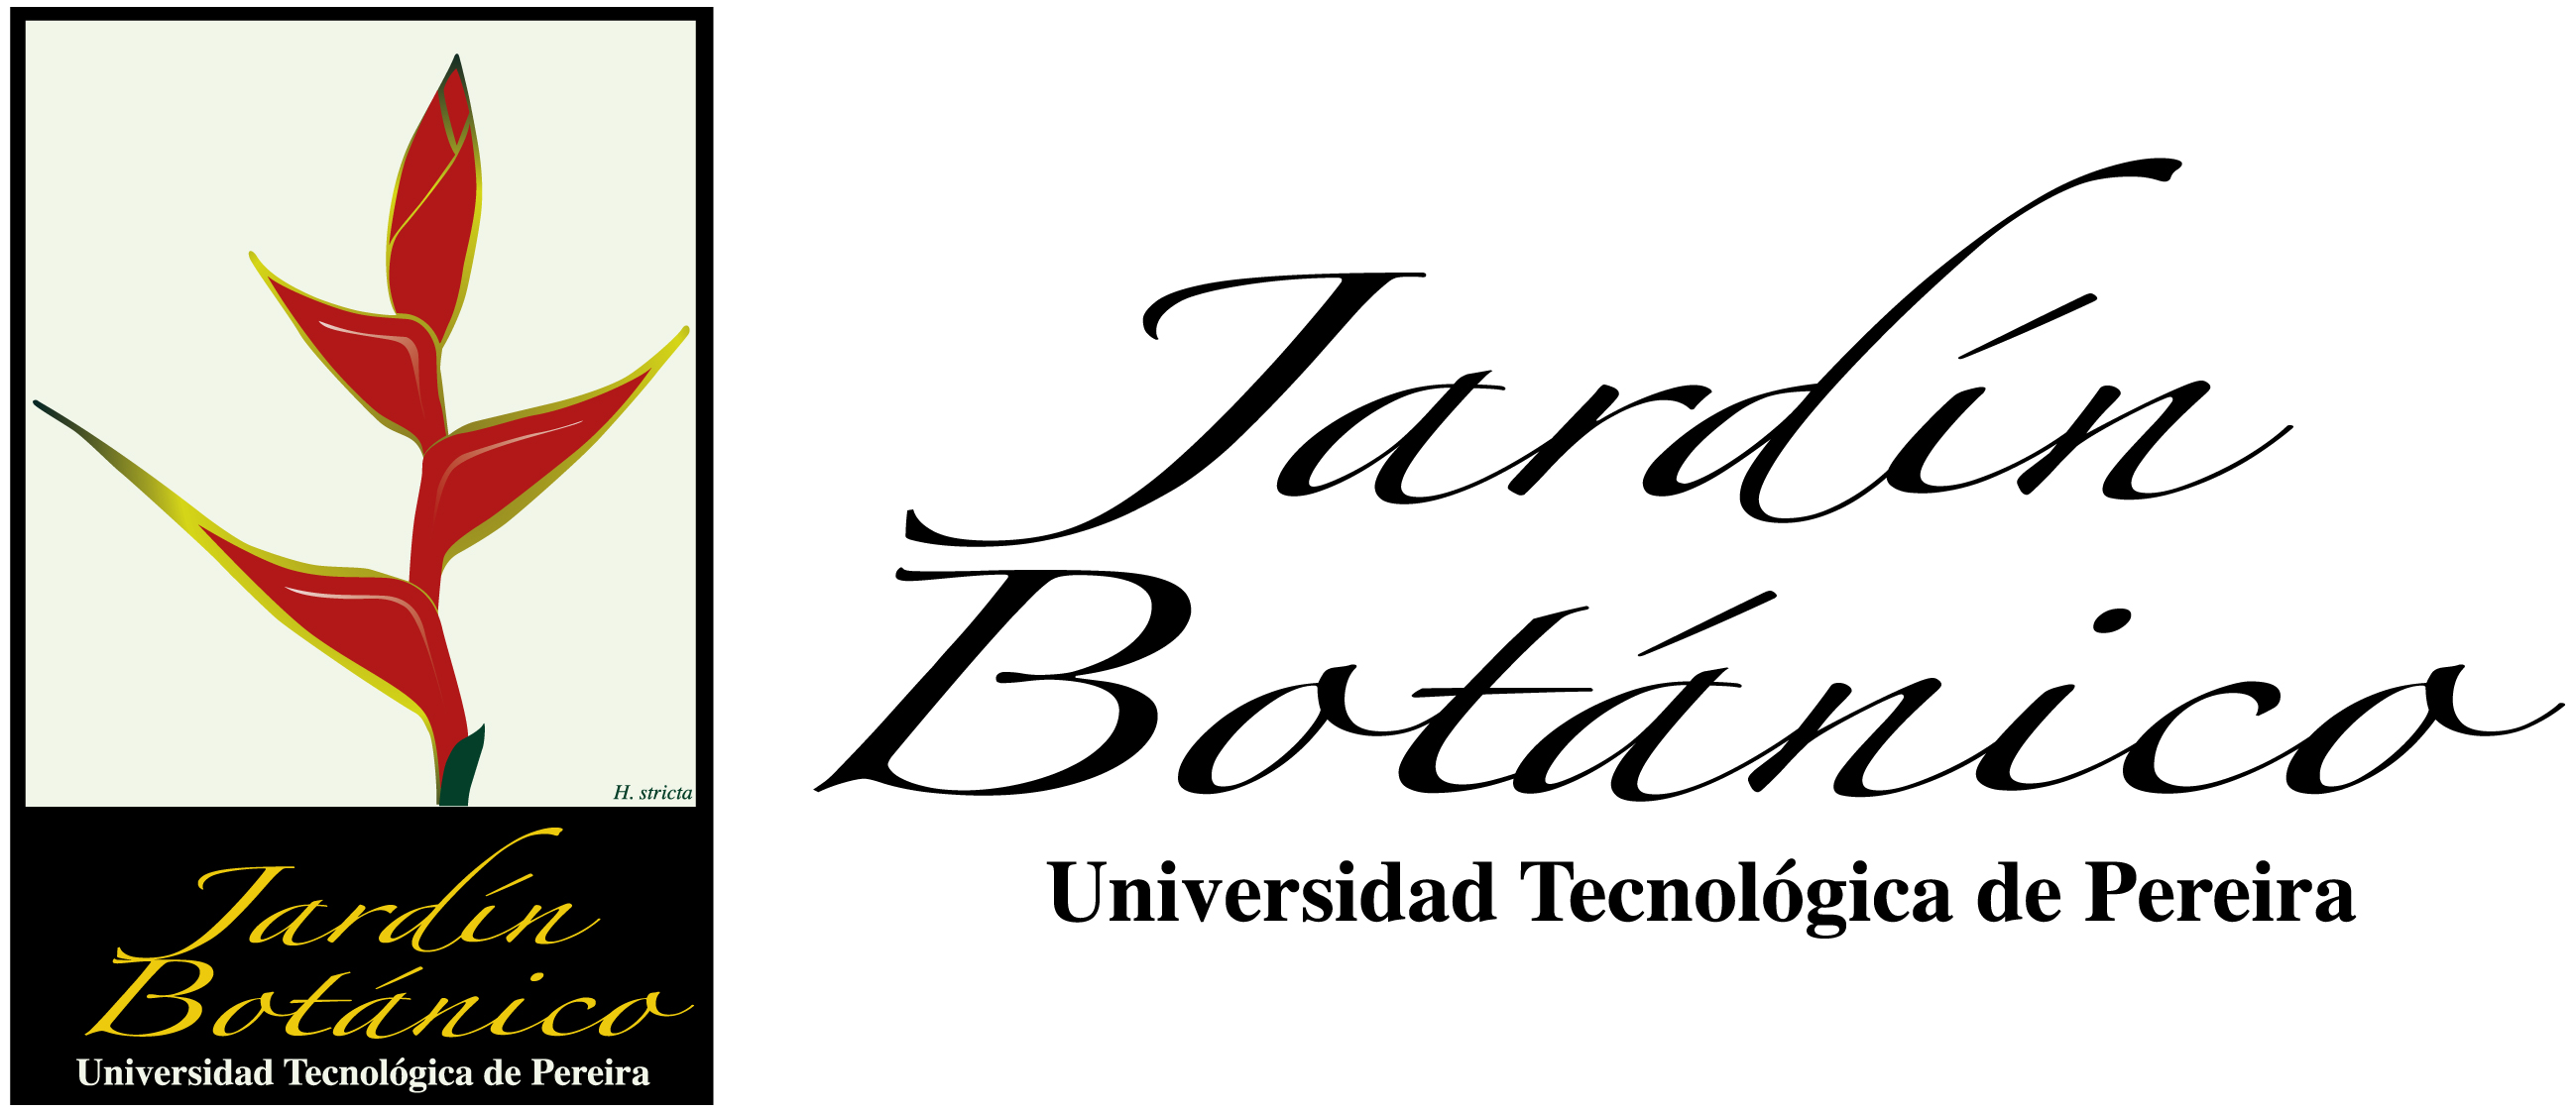 Jard n bot nico descargas for Jardin logo